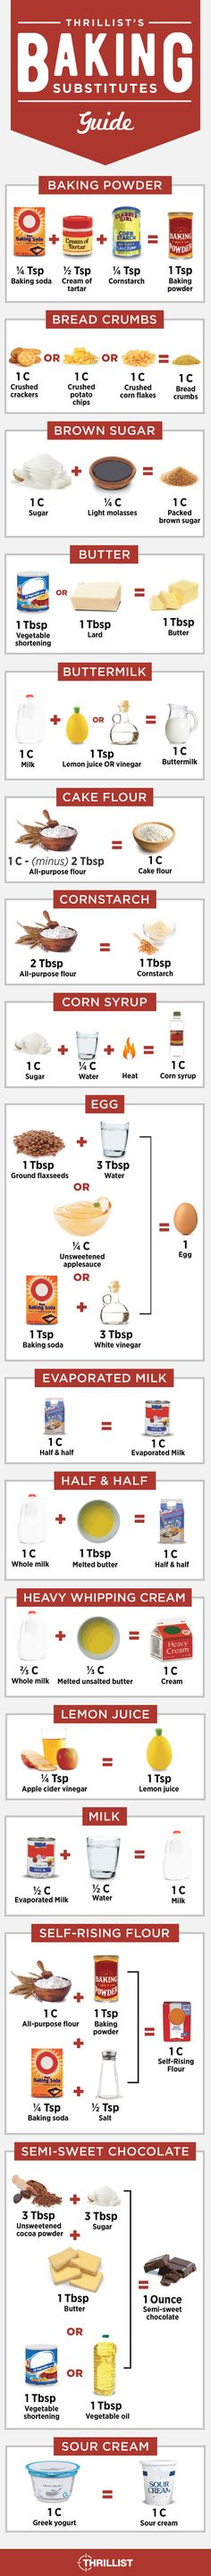 Baking Substitutions Infographic